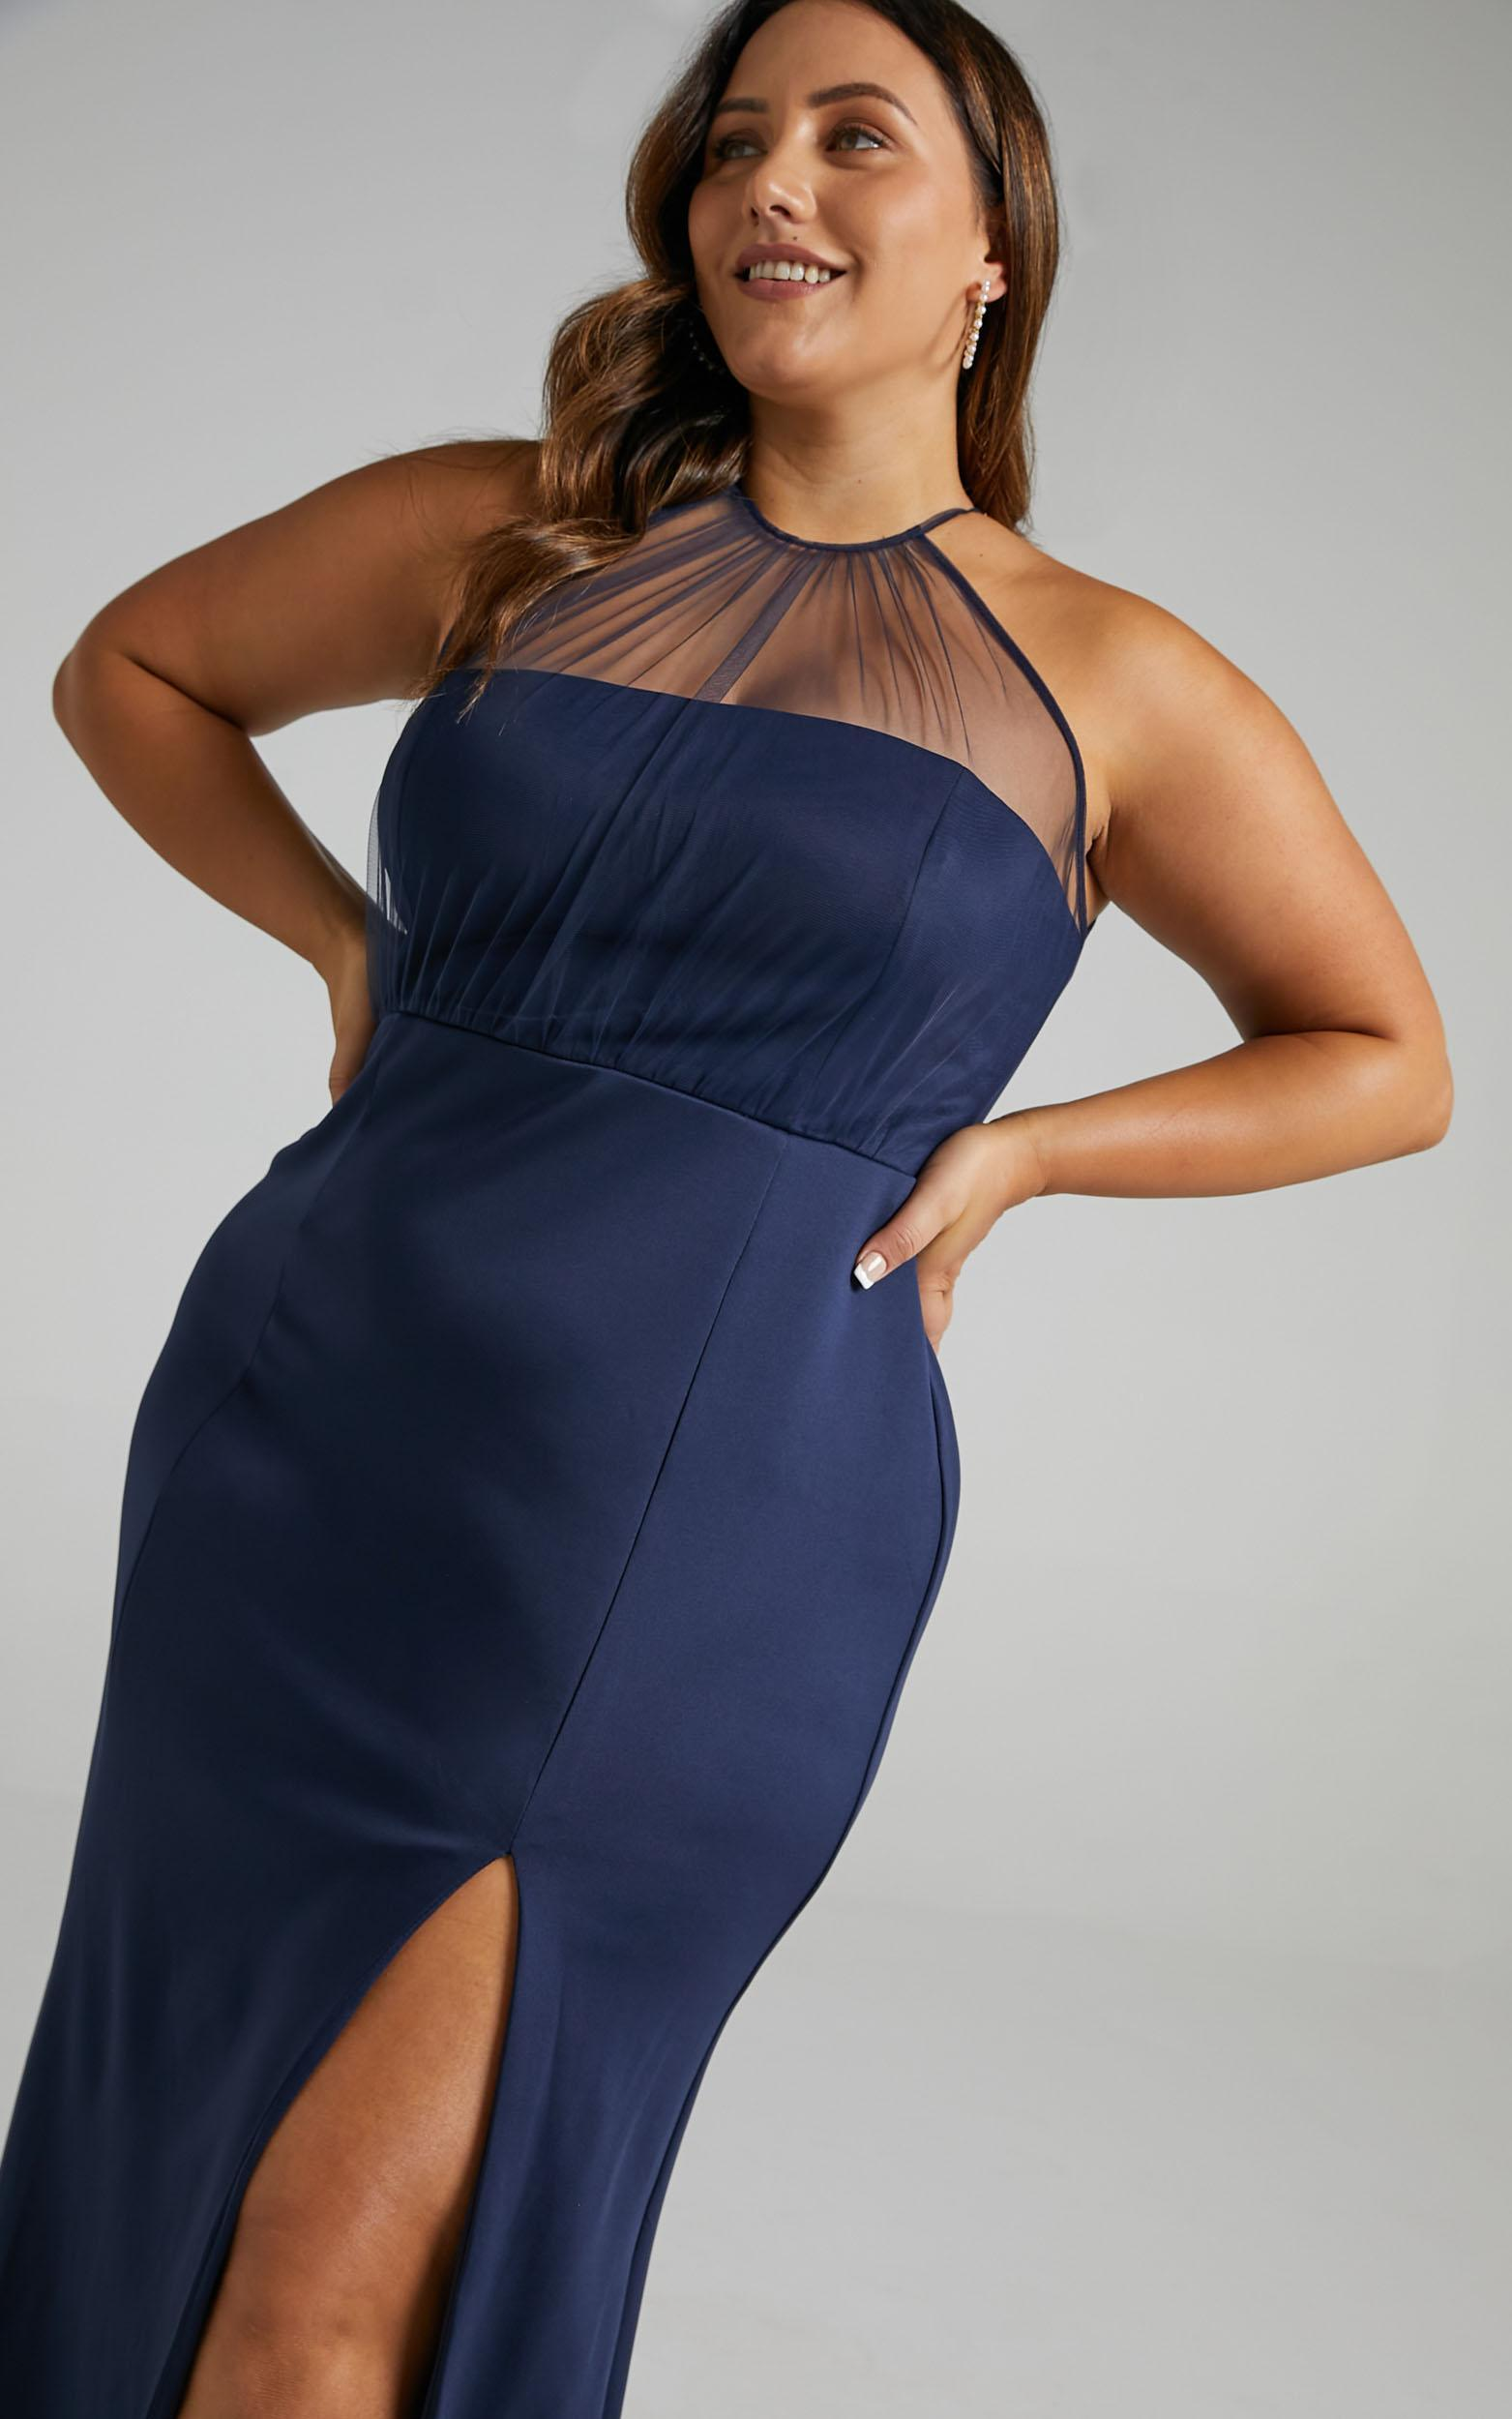 Still Love You Dress in Navy - 20, NVY3, hi-res image number null